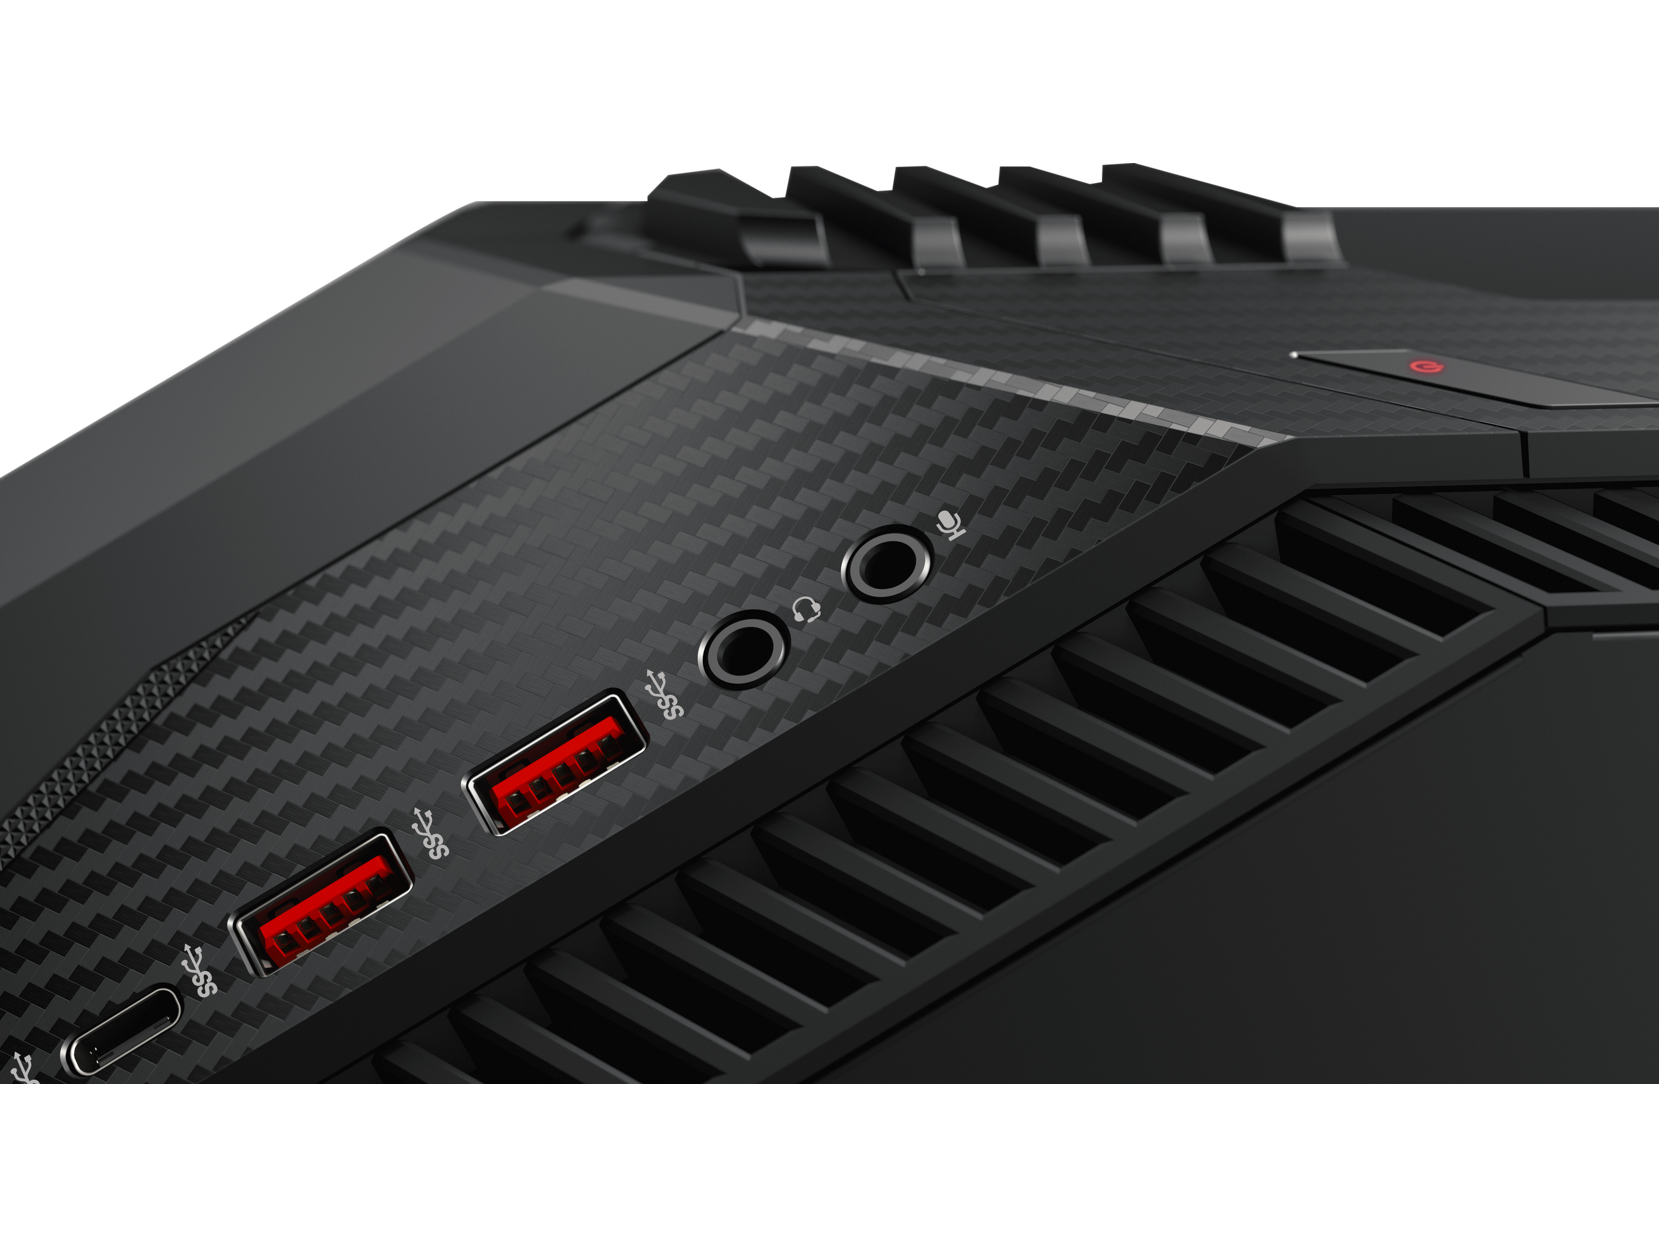 HP OMEN 880-172ns 3.2GHz i7-8700 Scrivania Nero PC